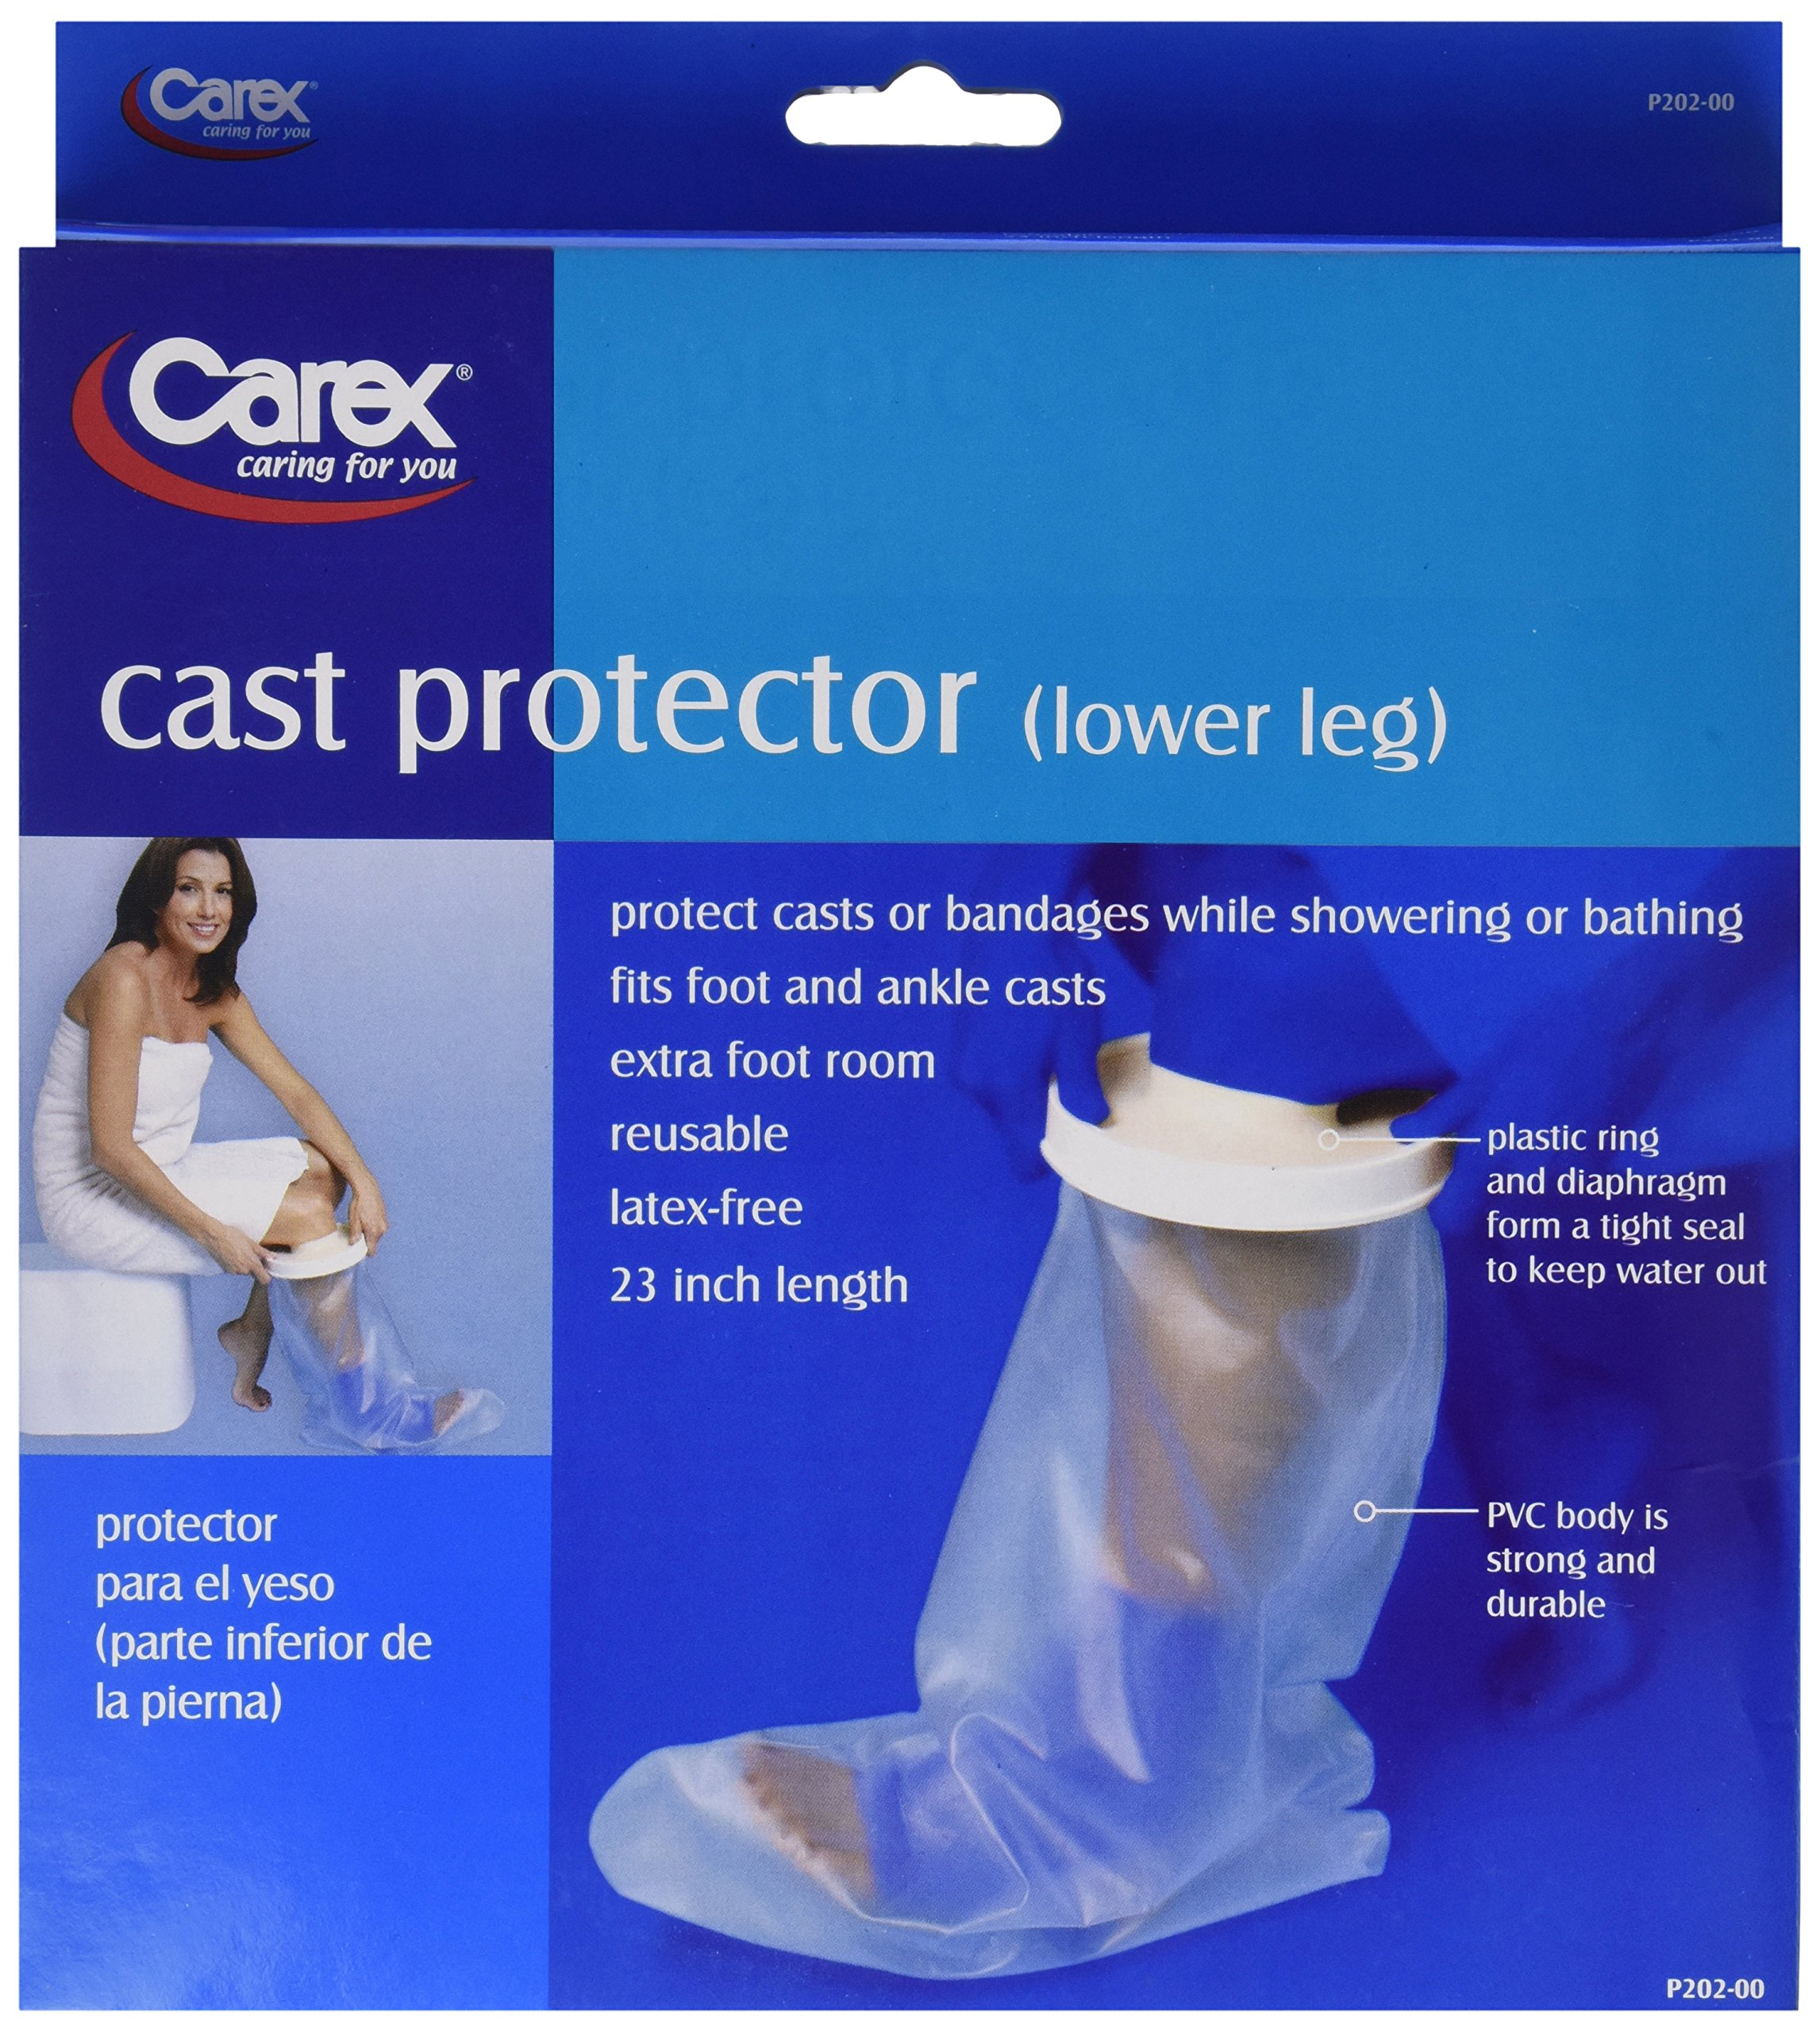 Carex Cast Protector Lower Leg, Protects Lower Leg Casts and Bandages while Showering, Latex Free Plastic with a Tight-Sealing Plastic Ring & Diaphragm